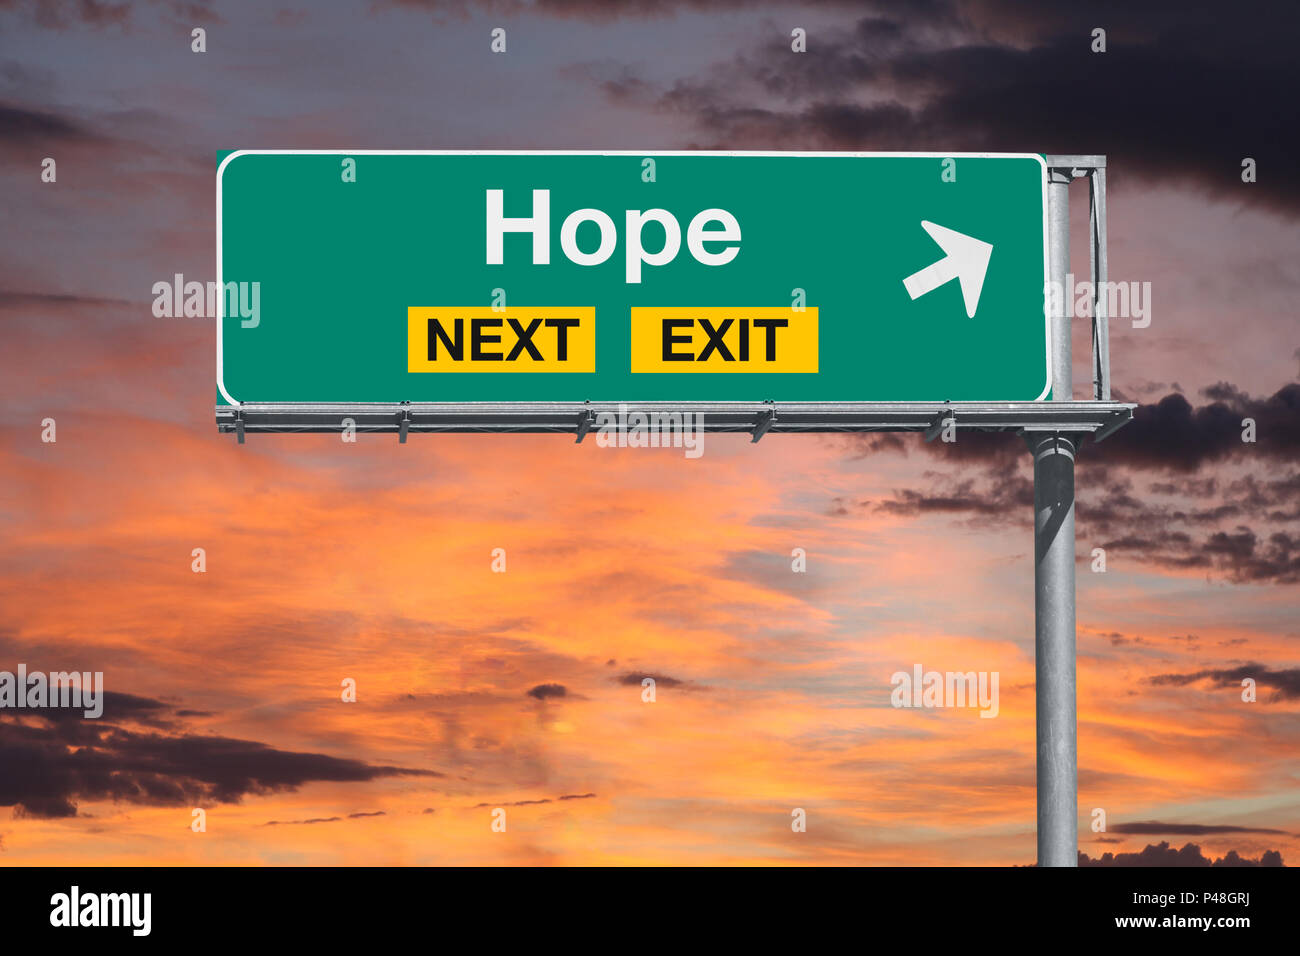 Hope next exit freeway sign with sunset sky. - Stock Image